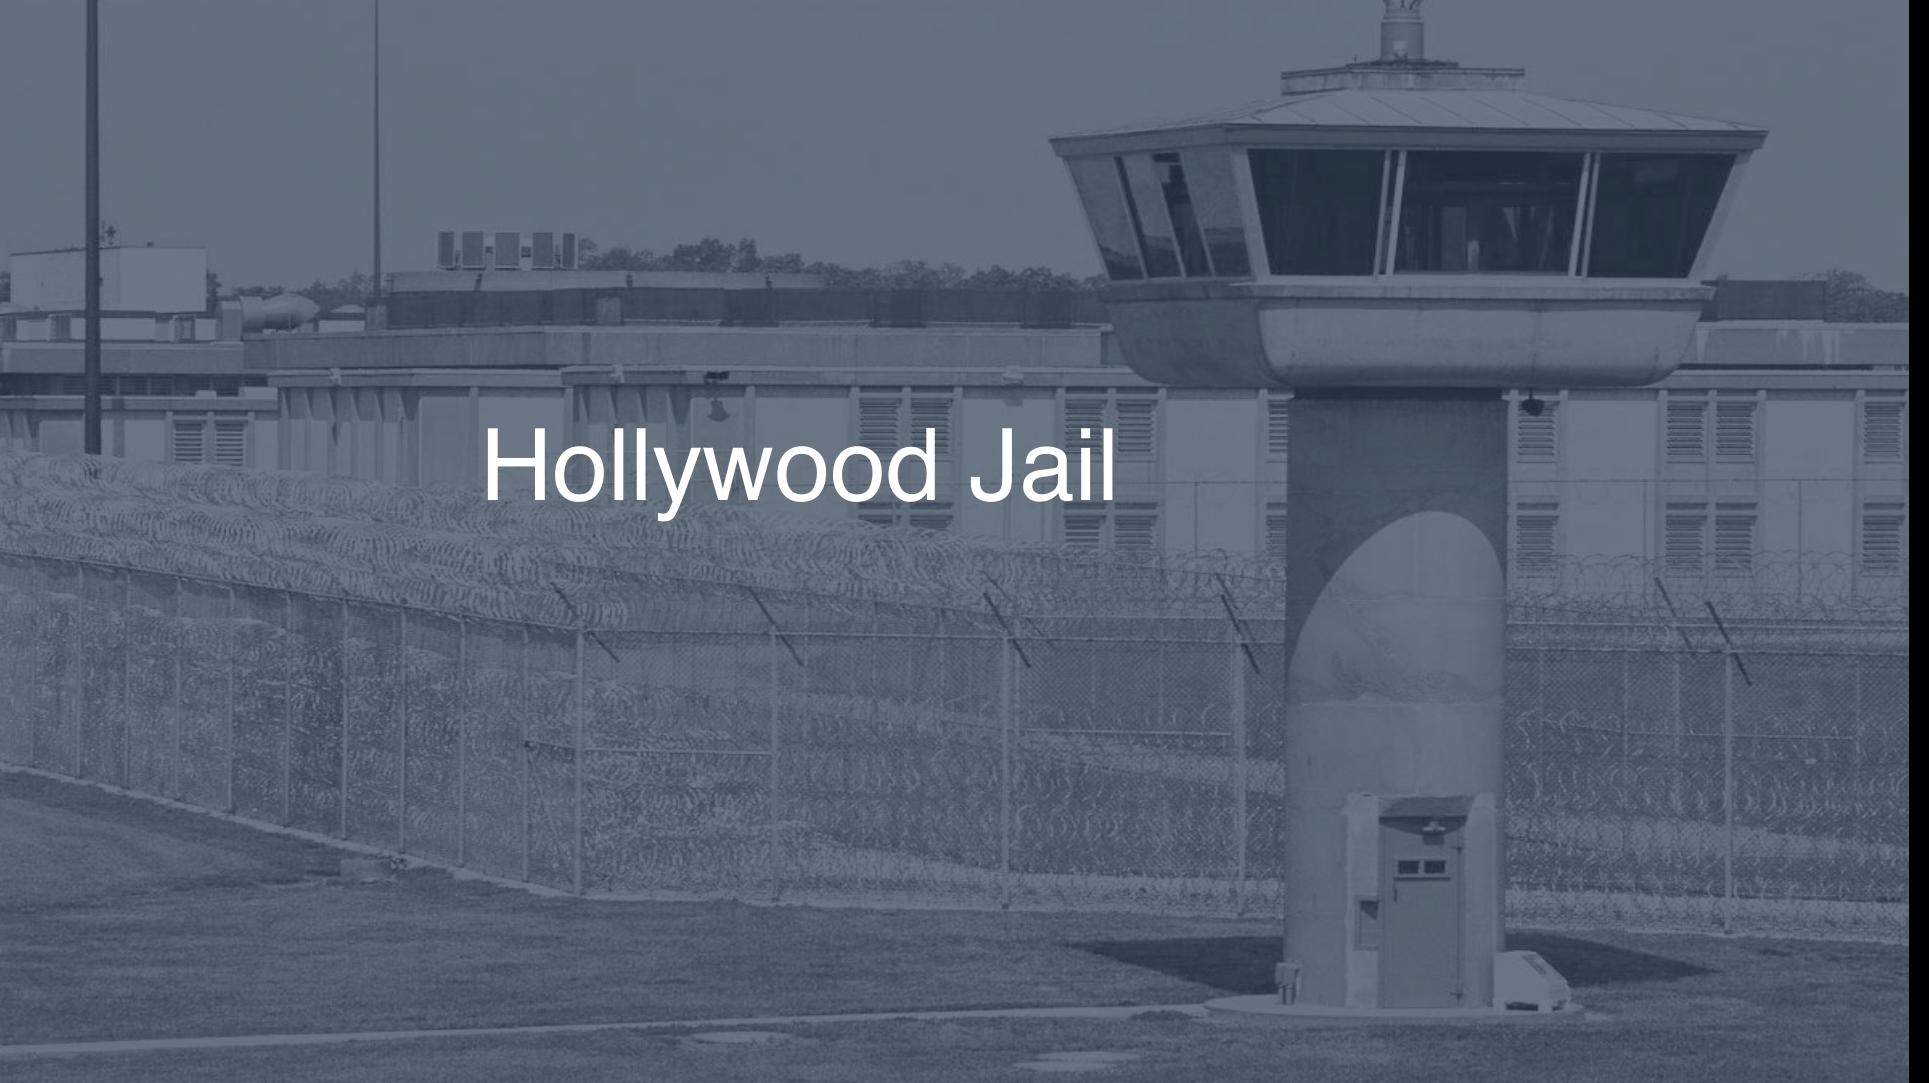 Hollywood Jail correctional facility picture